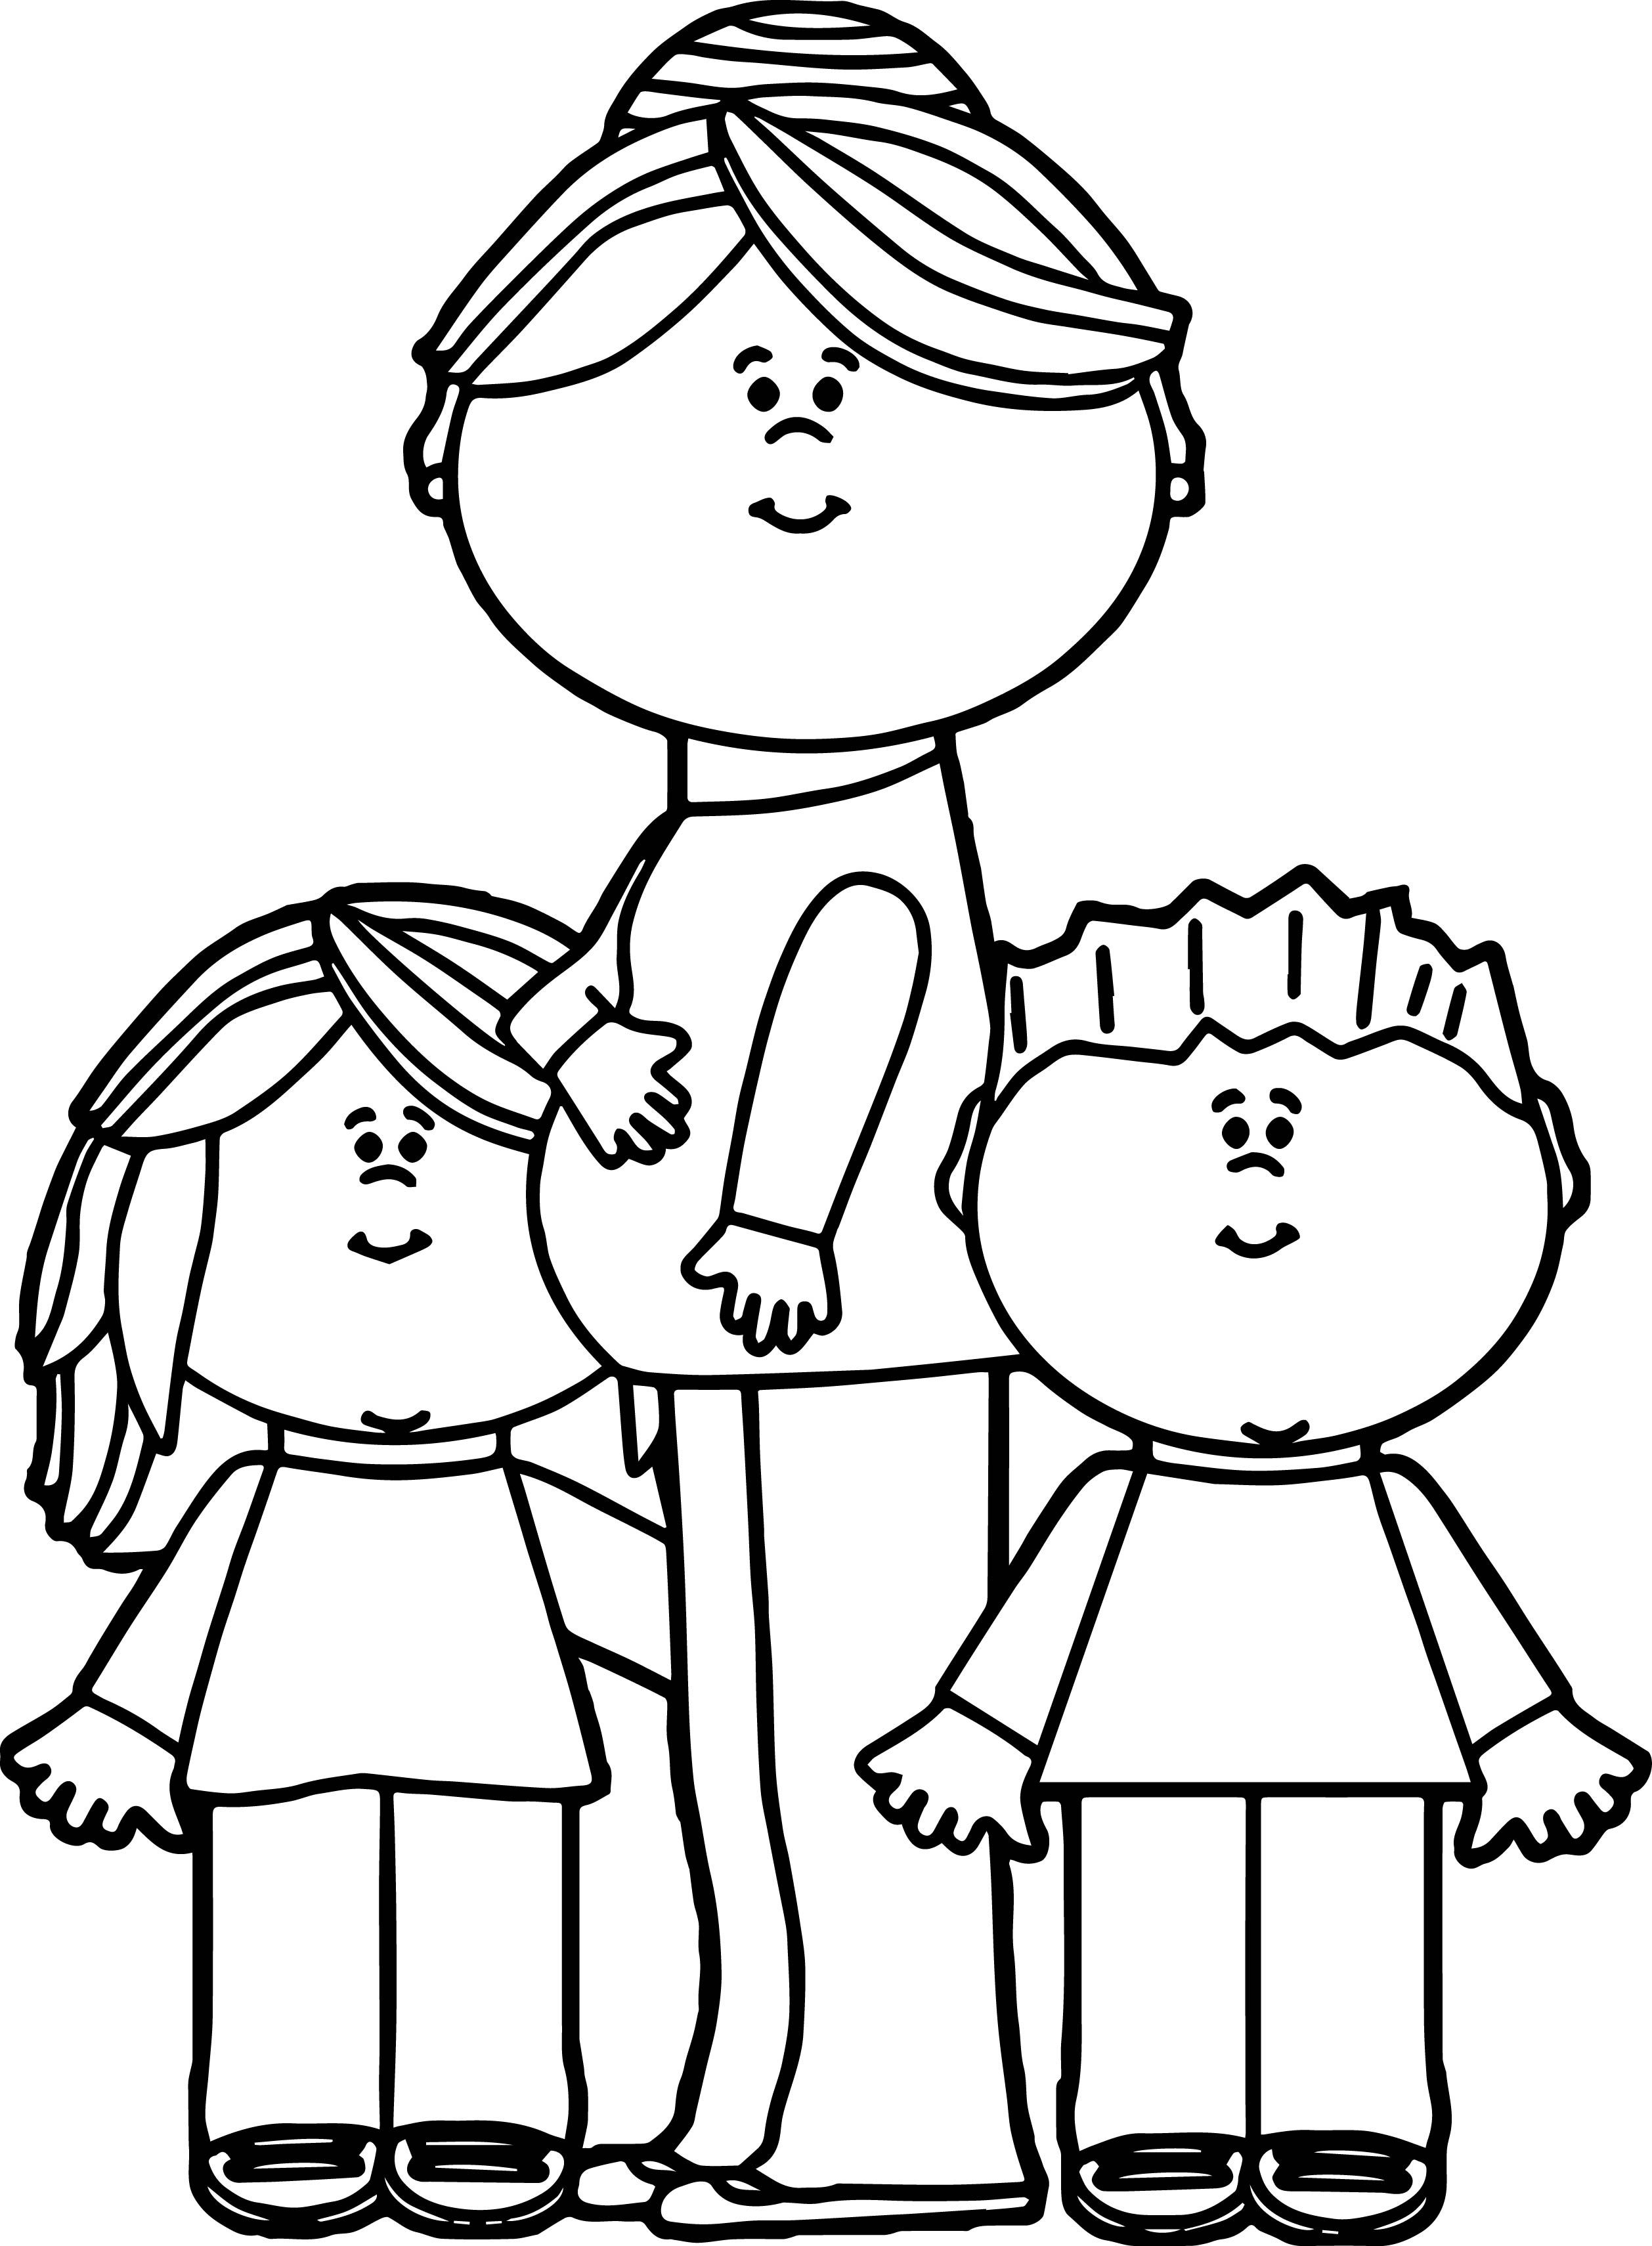 Awesome Pregnant Mom With Kids Coloring Page Coloring Pages For Kids Coloring Pages Family Coloring